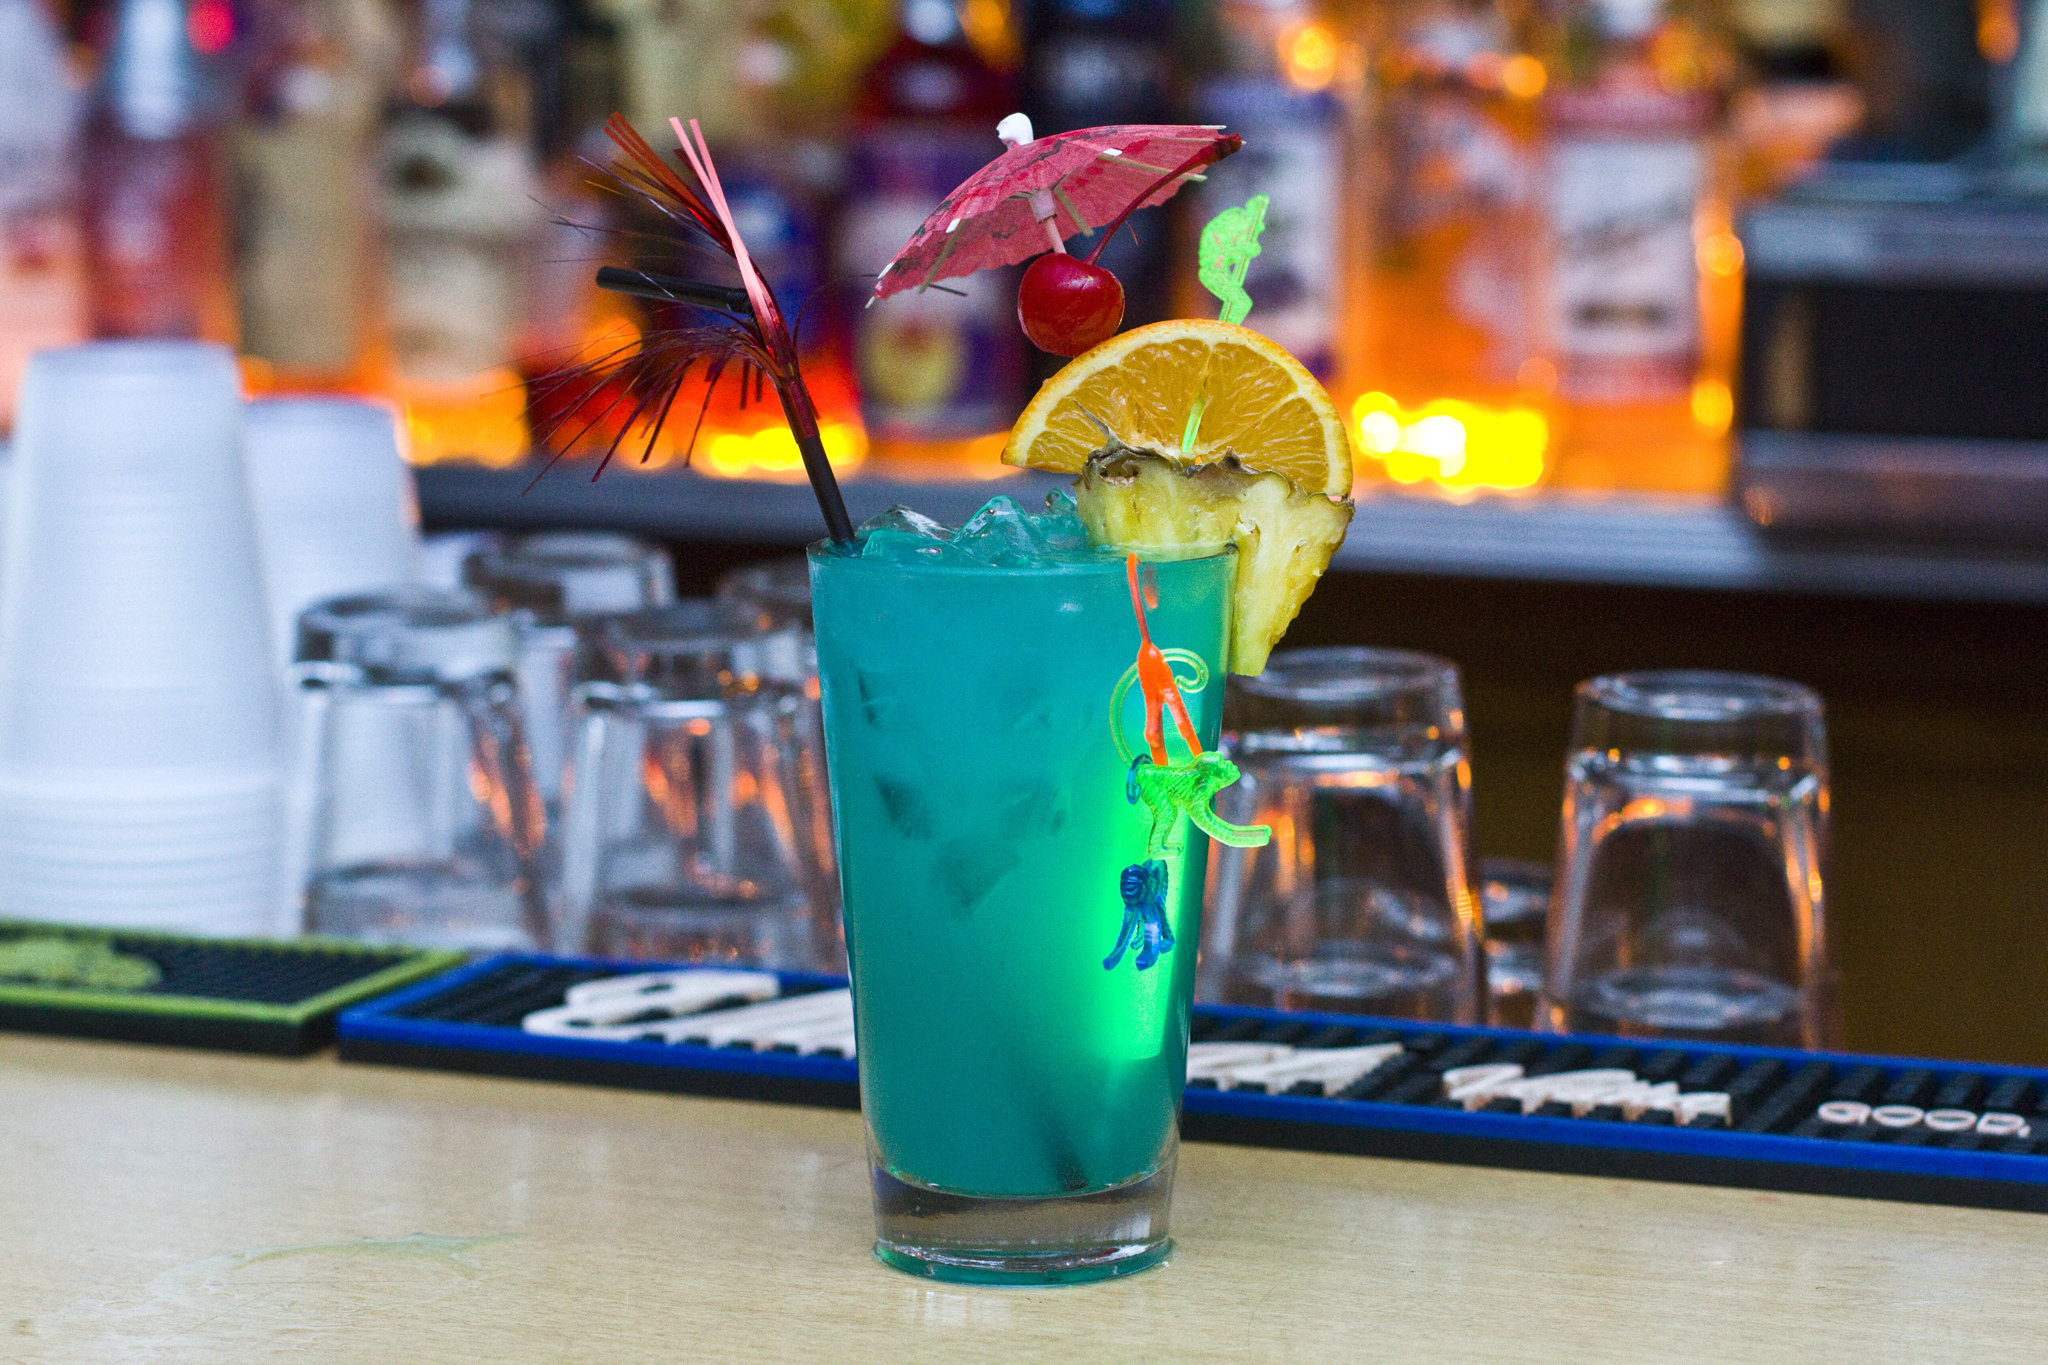 The best tiki bars and beach bars in NYC